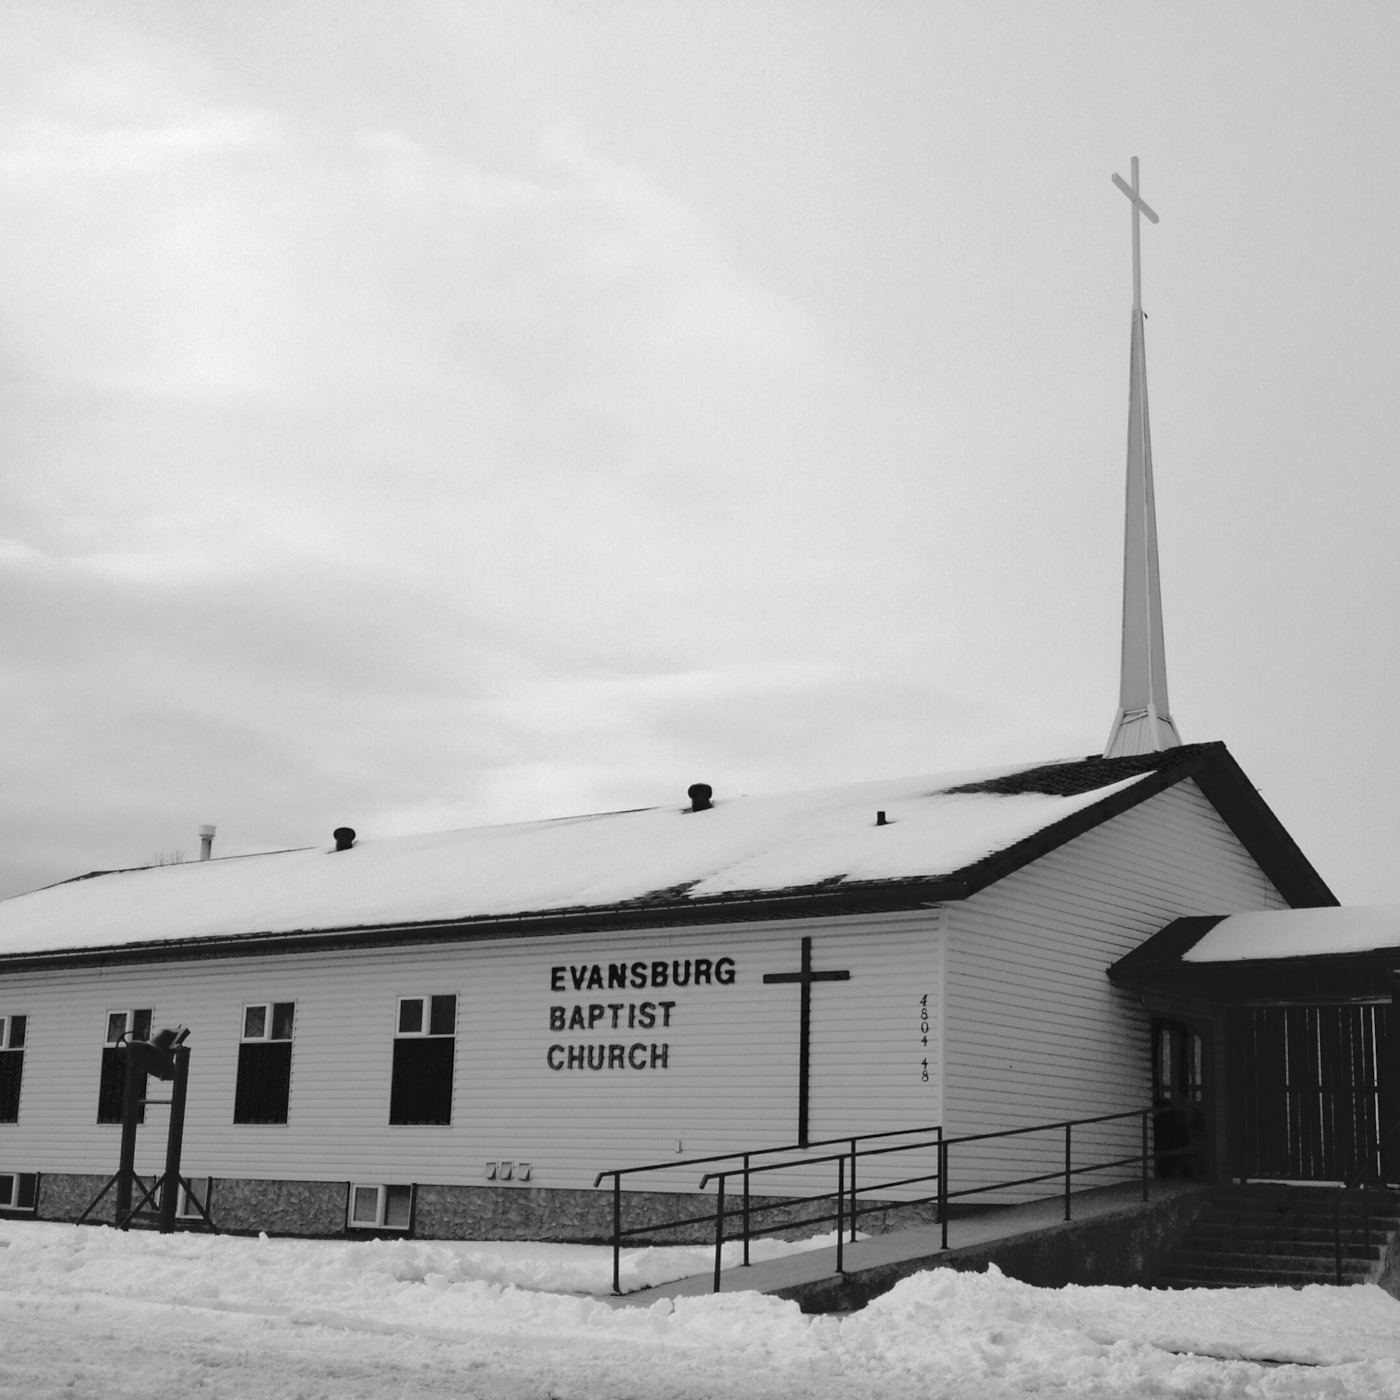 Evansburg Baptist Church